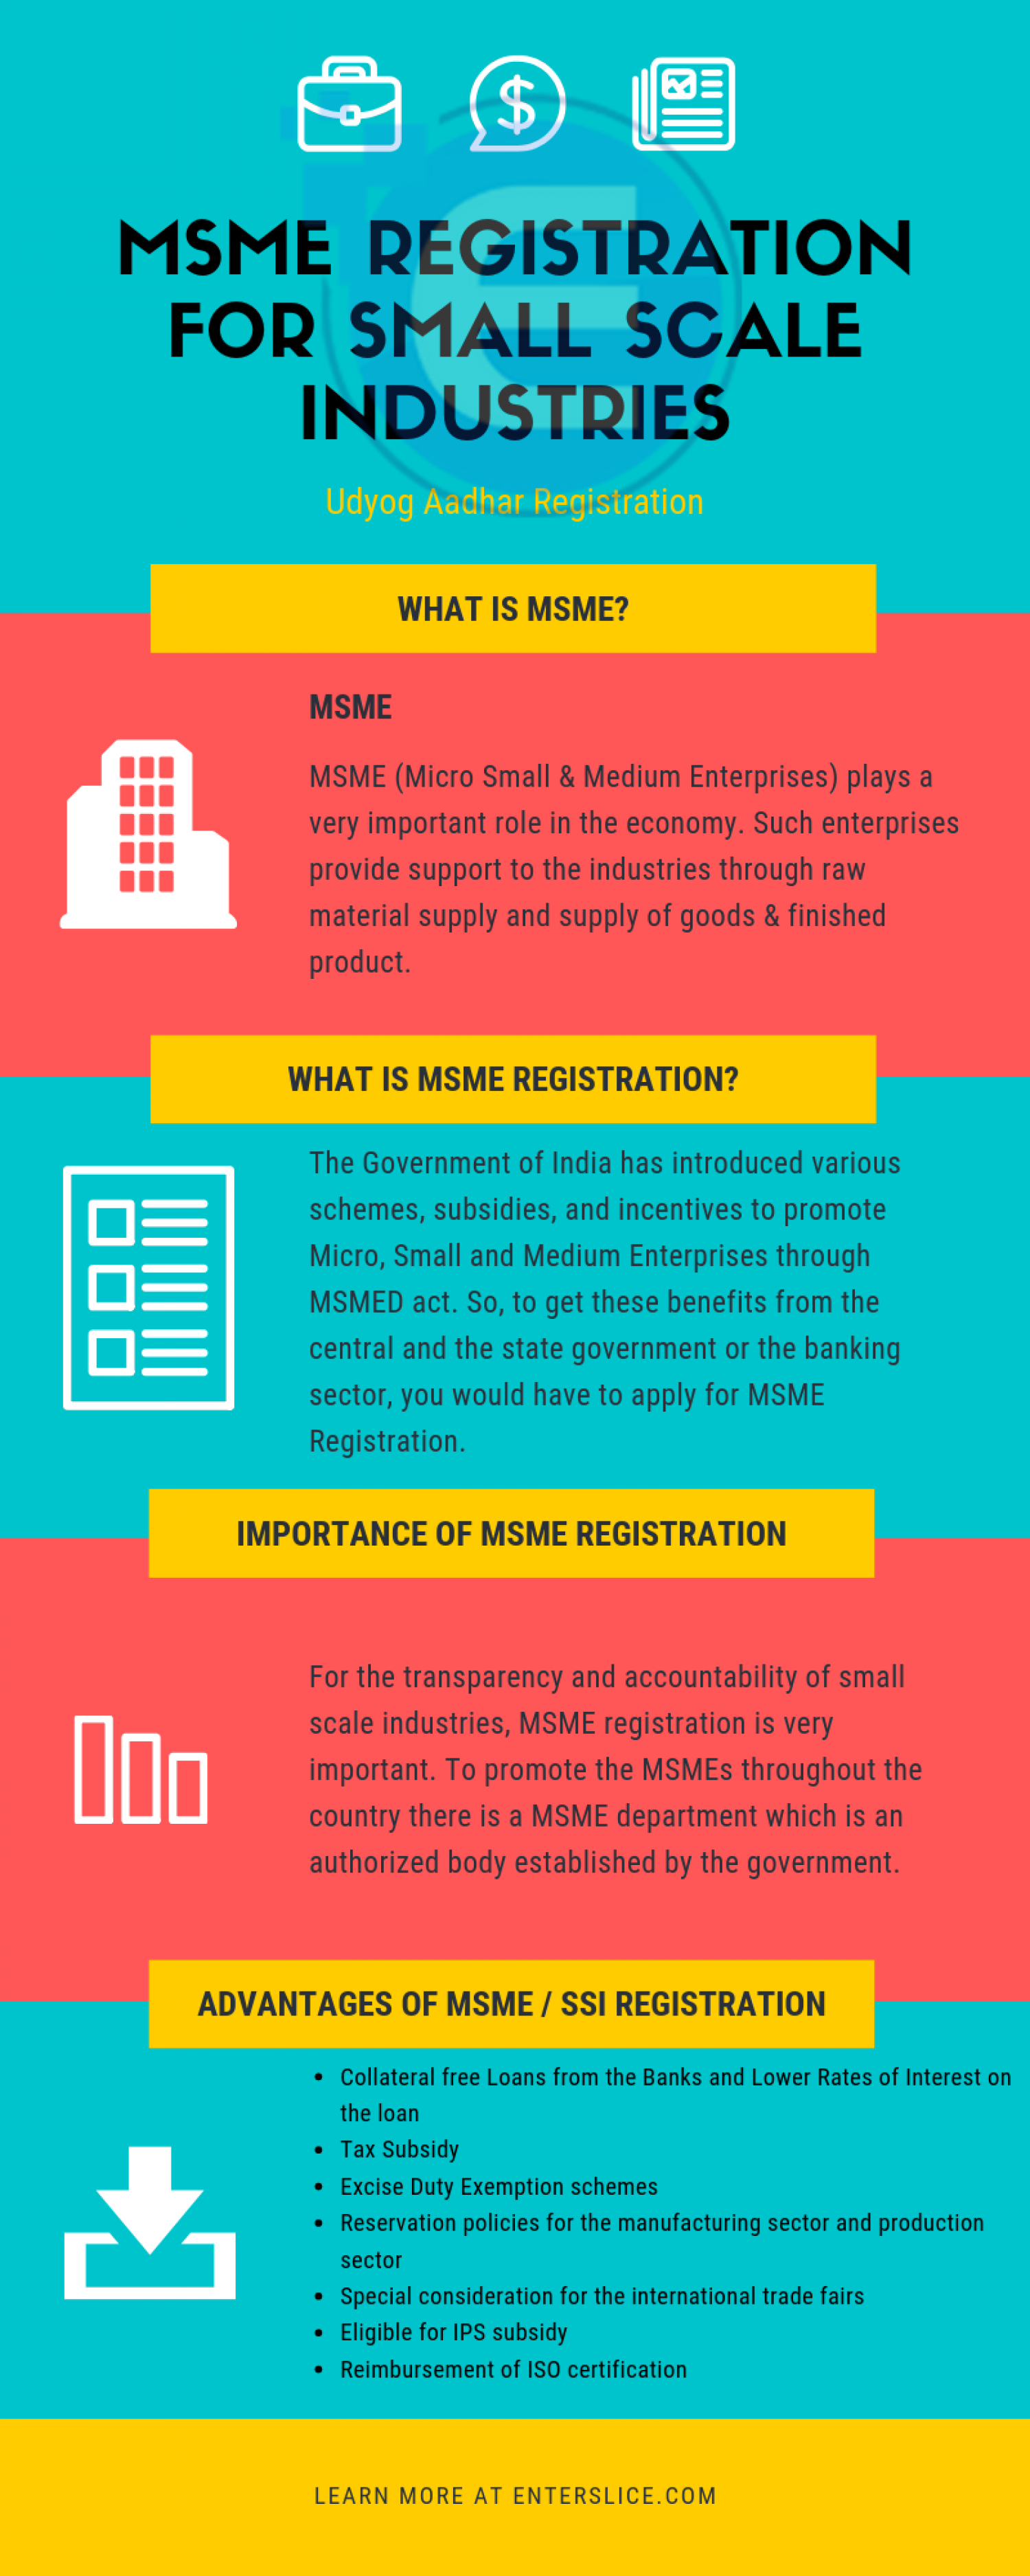 MSME Registration for Small Scale Industries | Visual ly